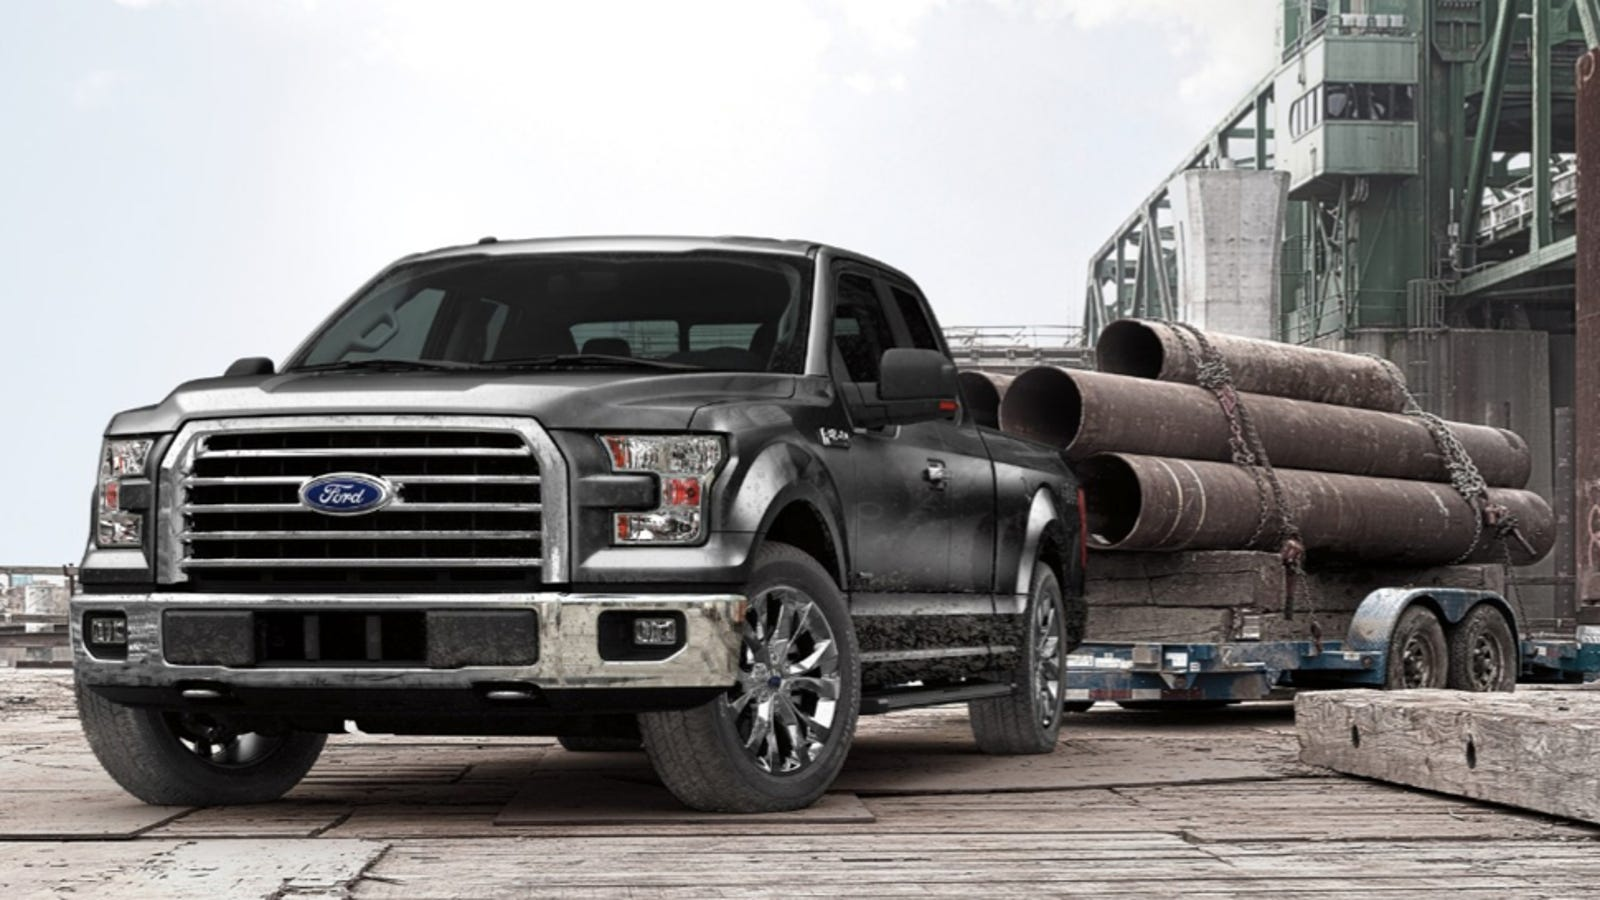 2015 ford f 150 can tow 12200 lbs carry an absurd 3300 lbs in bed